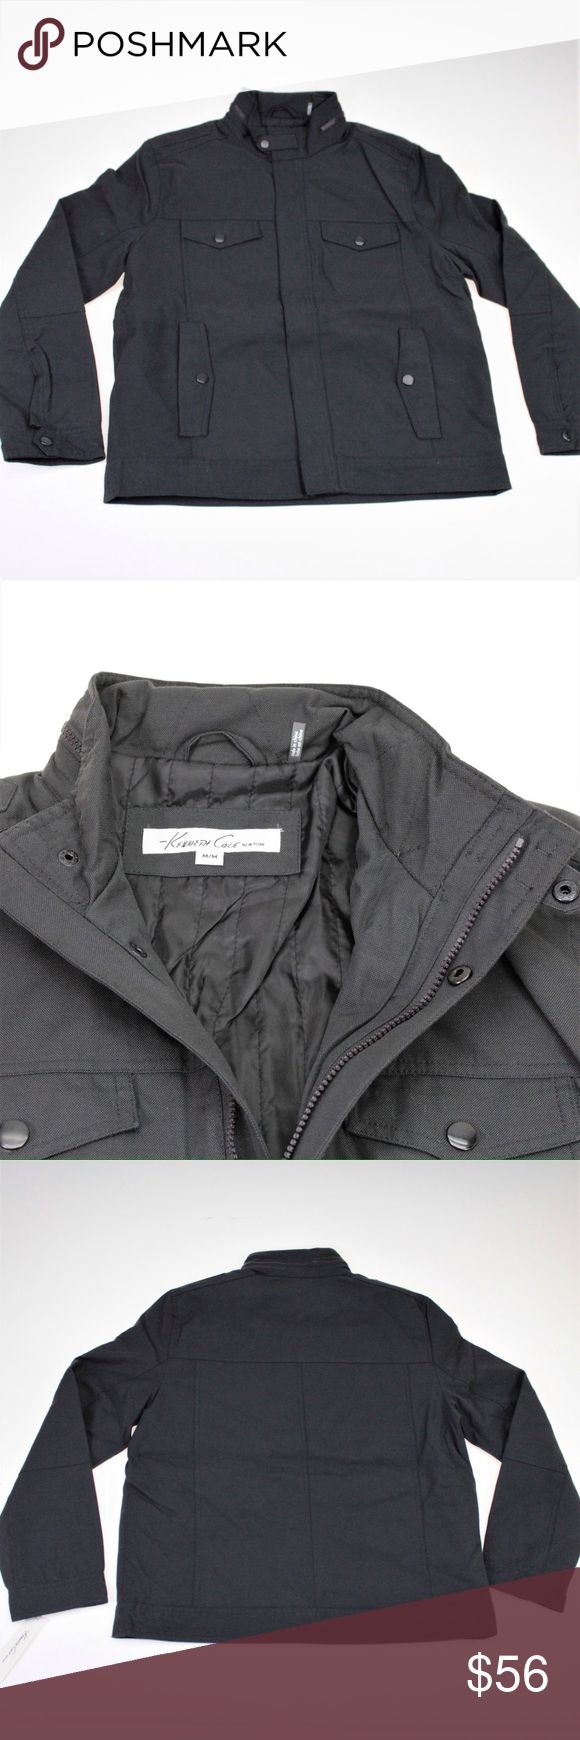 Kenneth Cole Gray Canvas Bomber Jacket Stay warm and look great in this handsome and rugged military bomber jacket by Kenneth Cole.This jacket has a full zip front with snap overlay and standing collar with zip detail. 55% Nylon, 45% Cotton. Kenneth Cole Jackets & Coats Bomber & Varsity